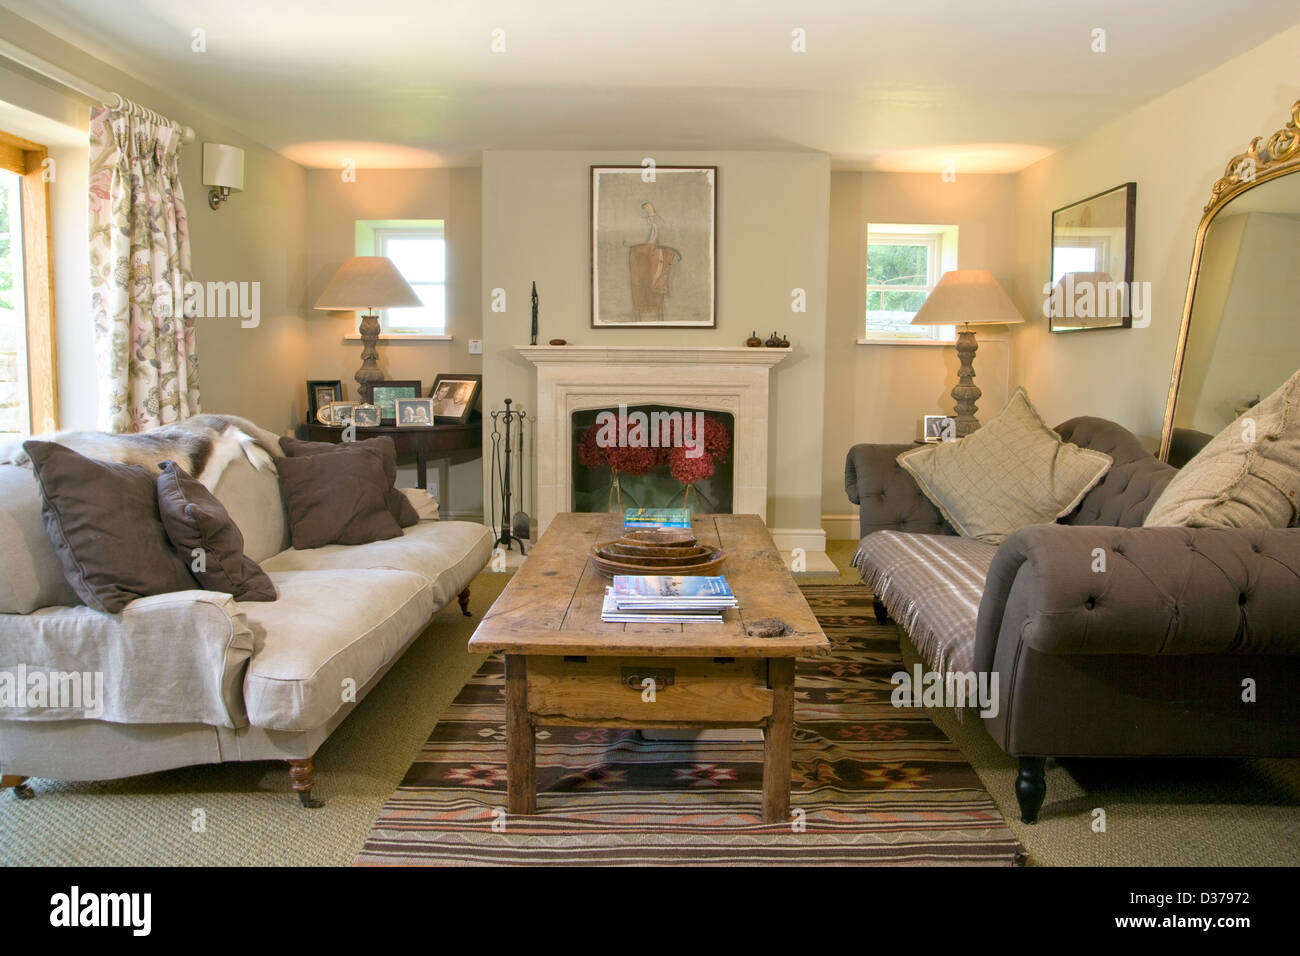 Contemporary Living Room With Two Opposing Sofas Stock Photo Royalty Free Im